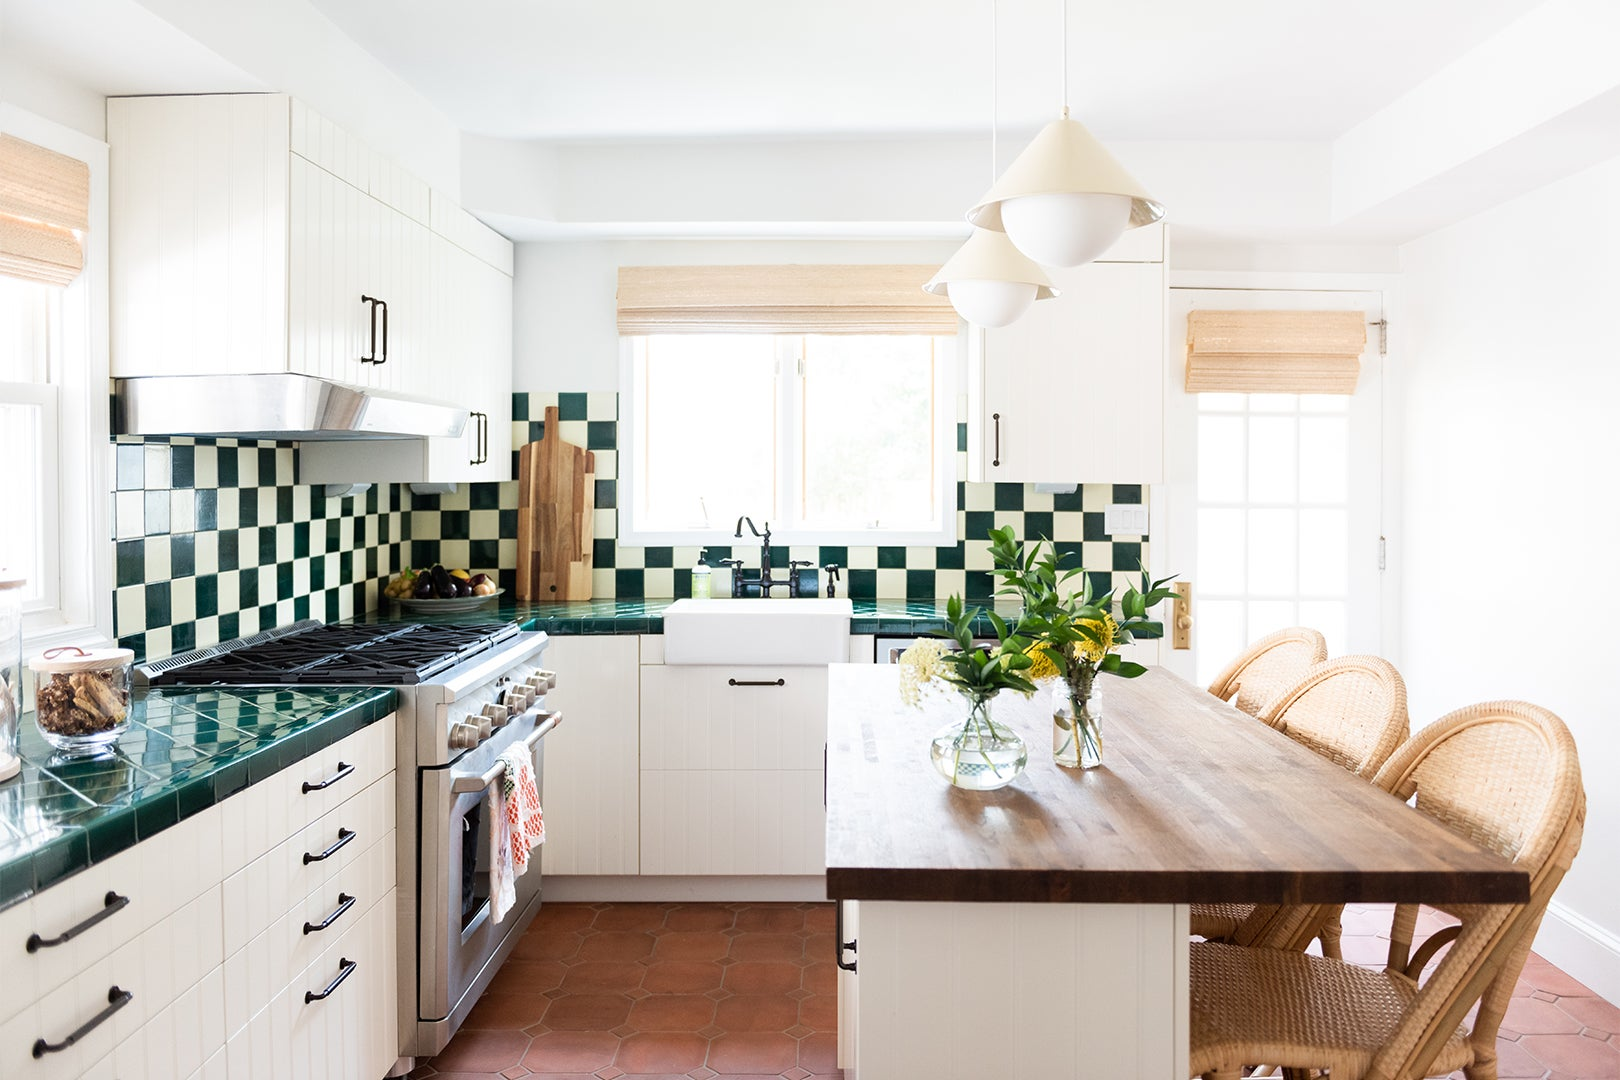 00-FEATURE-tiled-countertops-domino